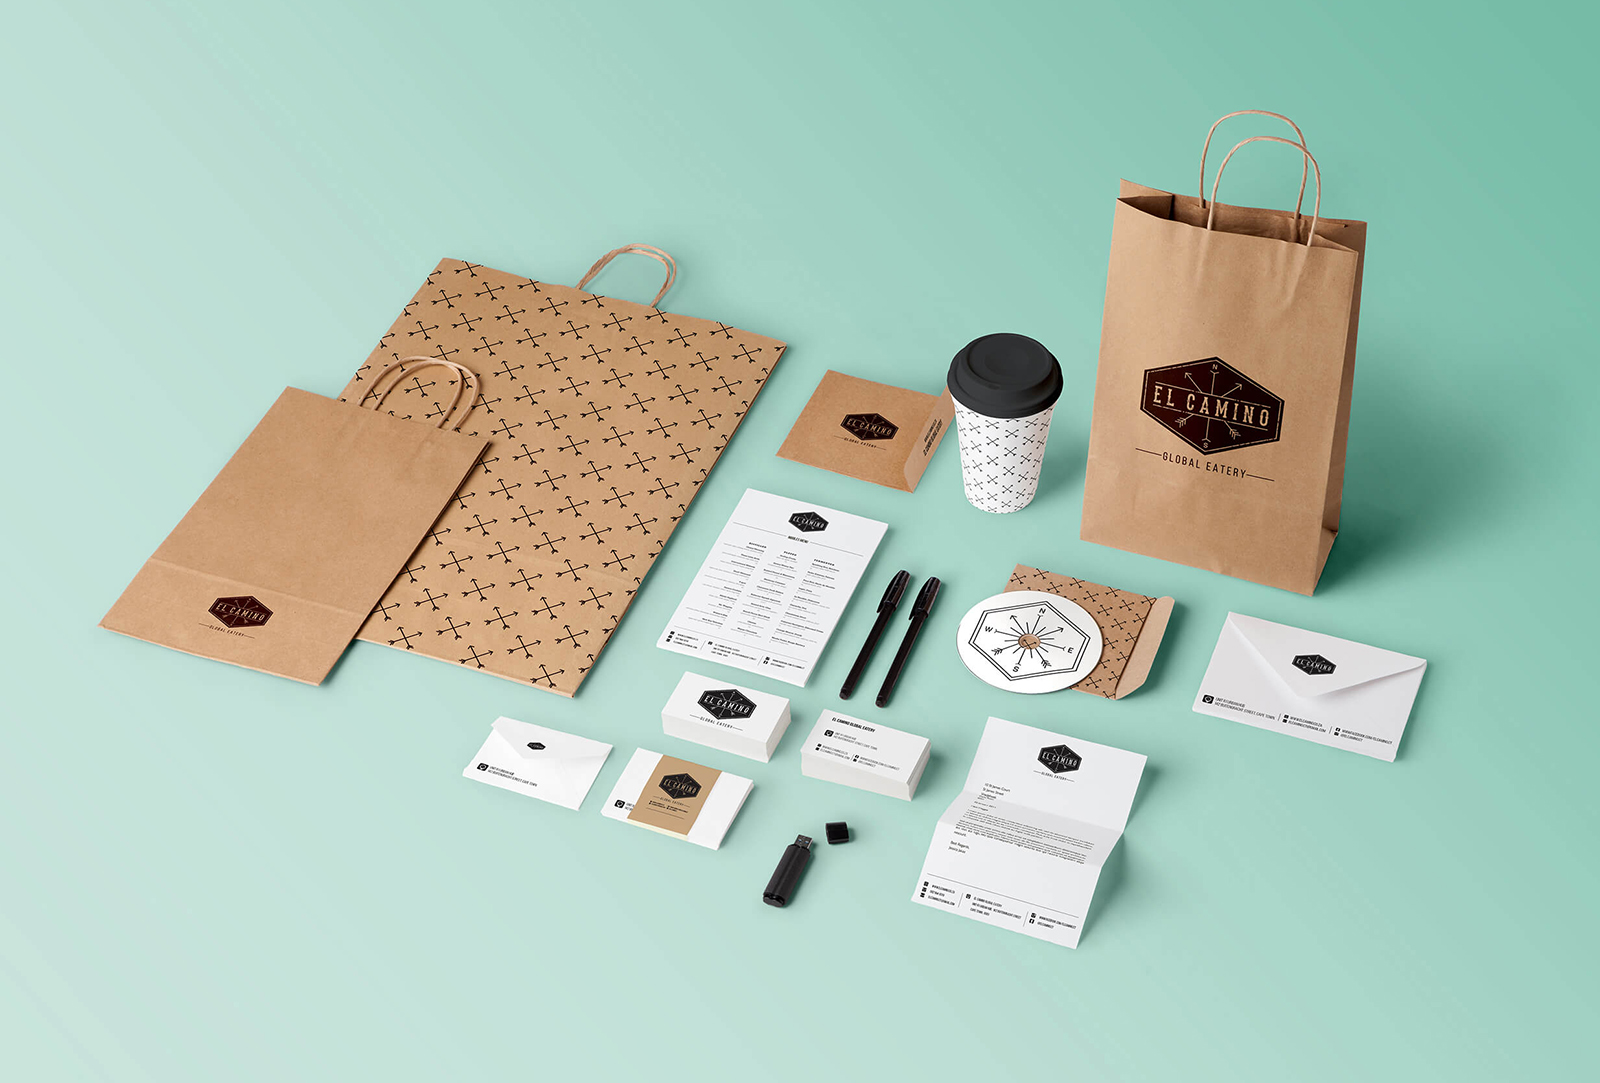 El Camino - Stationery & Packaging